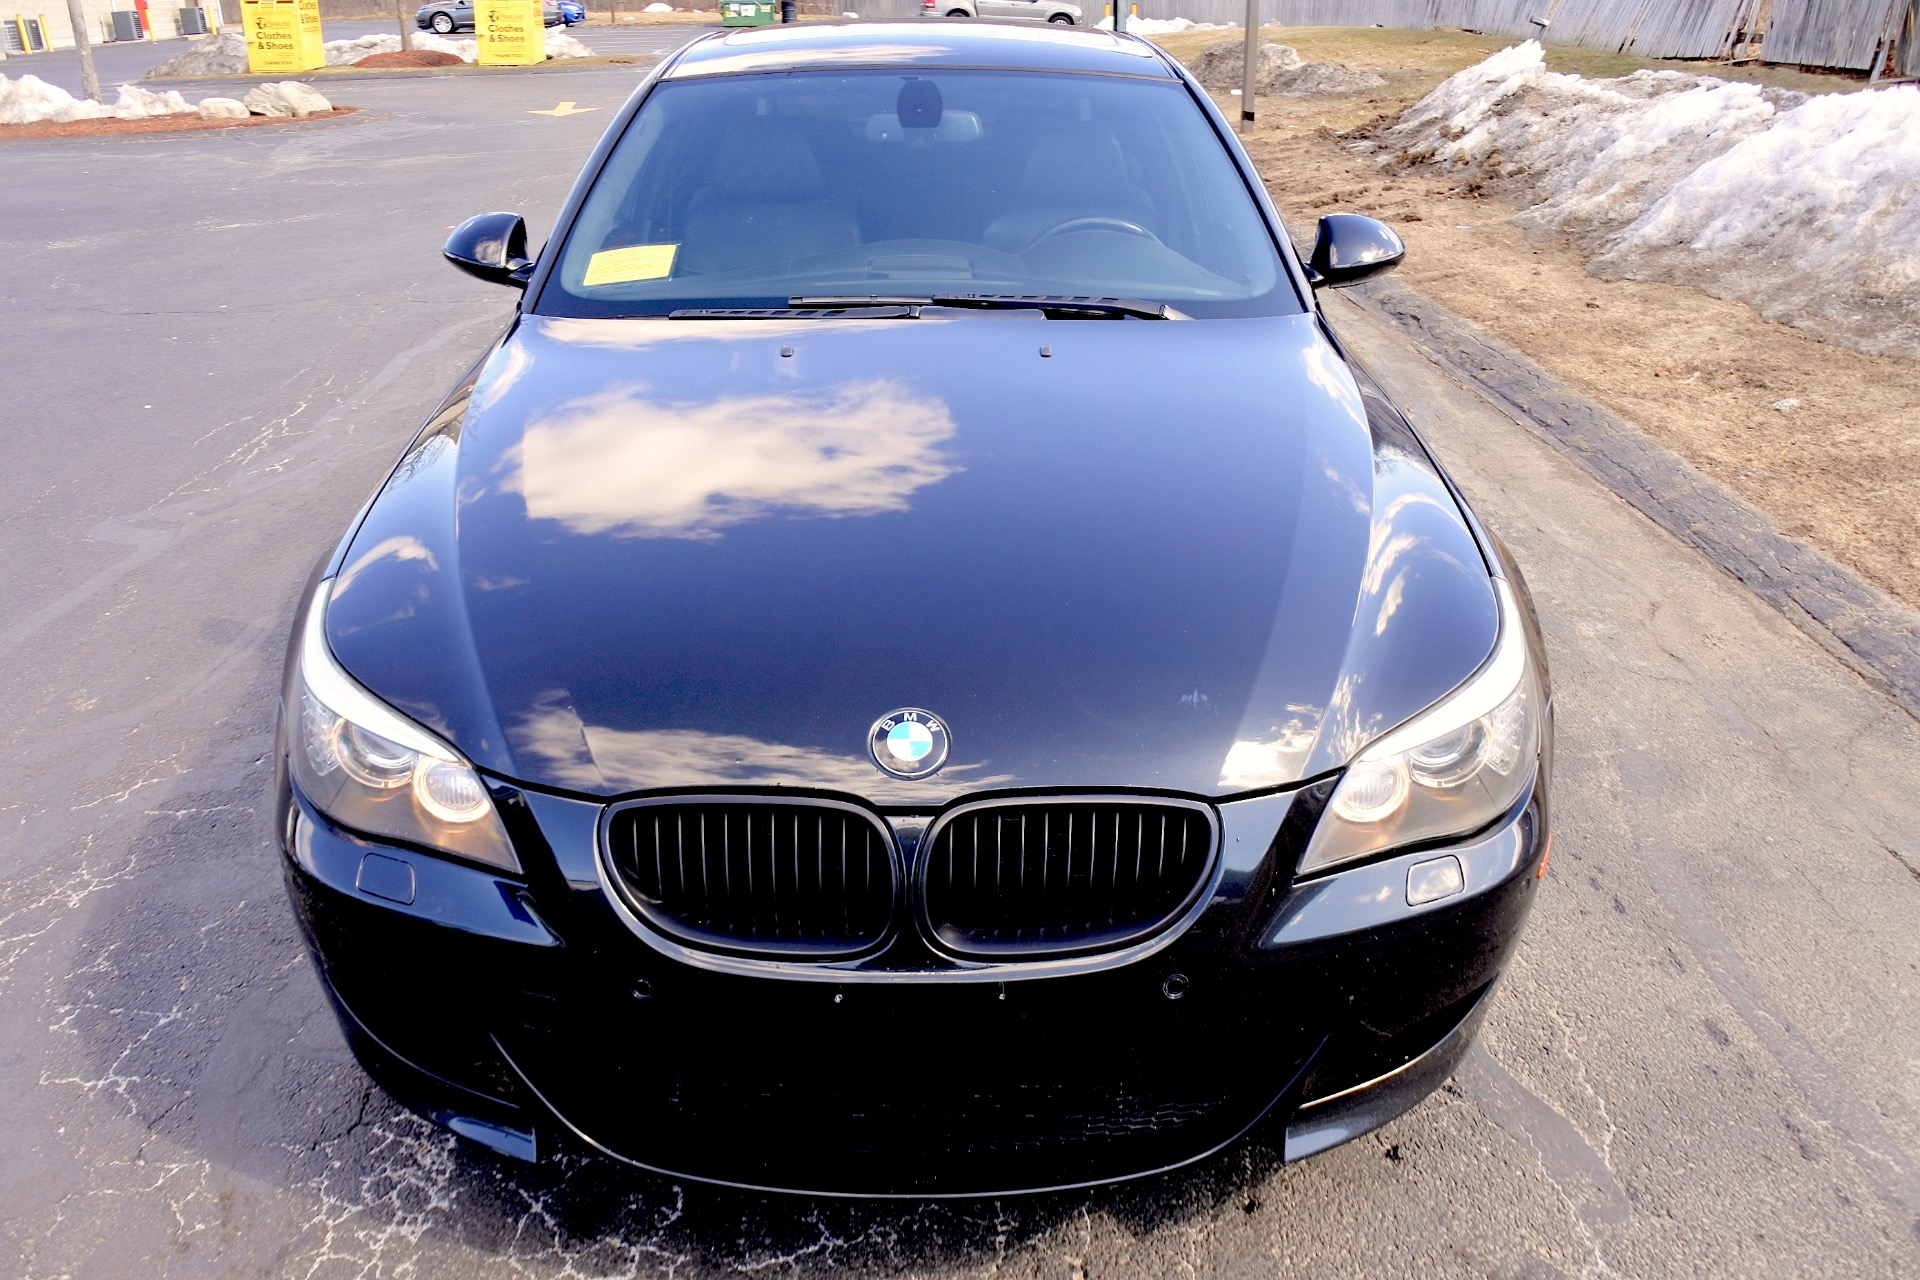 Used 2010 BMW M5 4dr Sdn Used 2010 BMW M5 4dr Sdn for sale  at Metro West Motorcars LLC in Shrewsbury MA 7